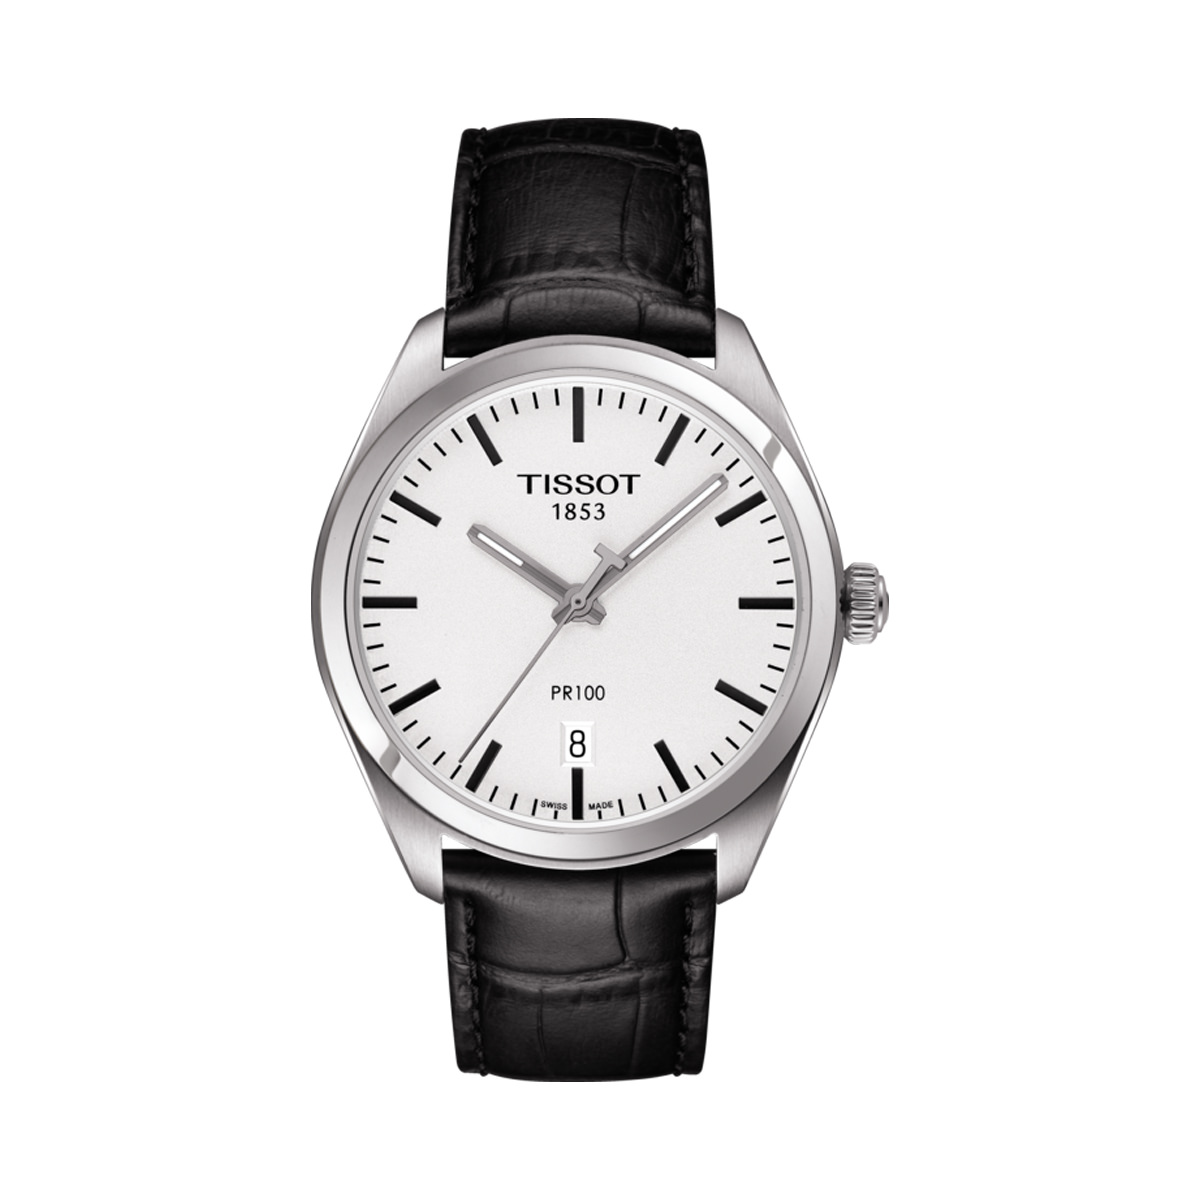 Tissot T-Classic PR100 Black Strap Watch